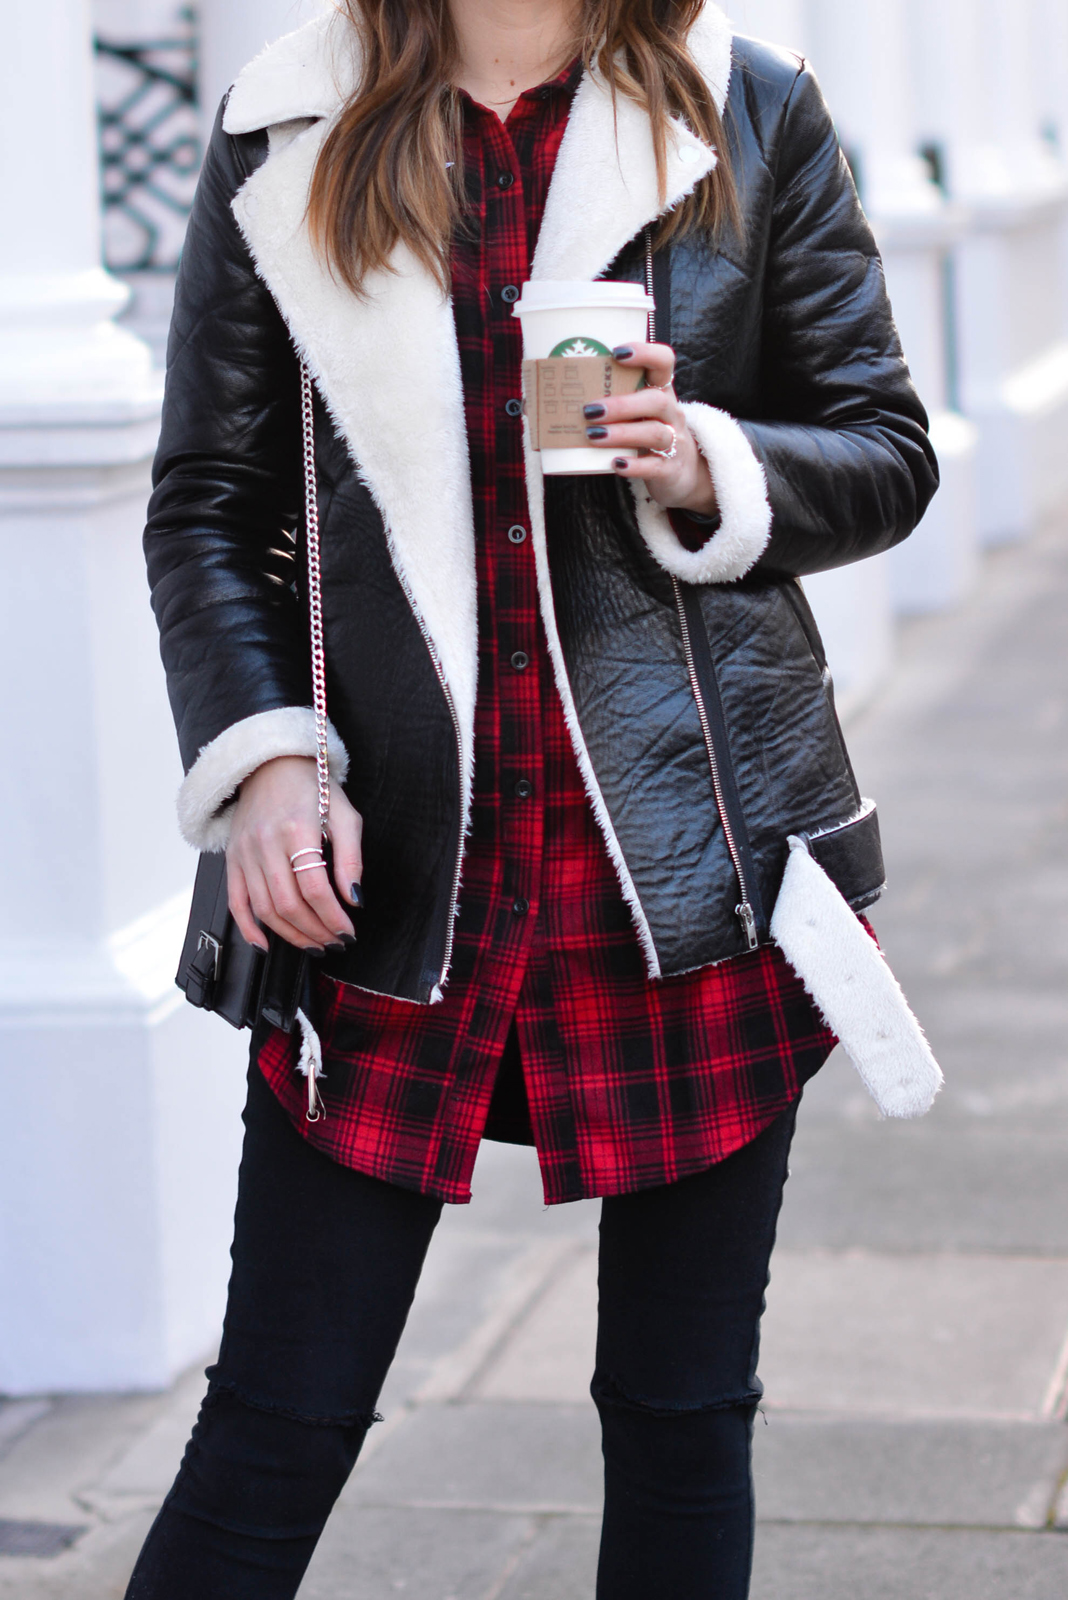 EJSTYLE - Emma Hill, Missguided red check shirt dress, Missguided borg aviator biker jacket, missguided black brossbody bag, missguided black ripped skinny jeans, OOTD, missguidedgurl